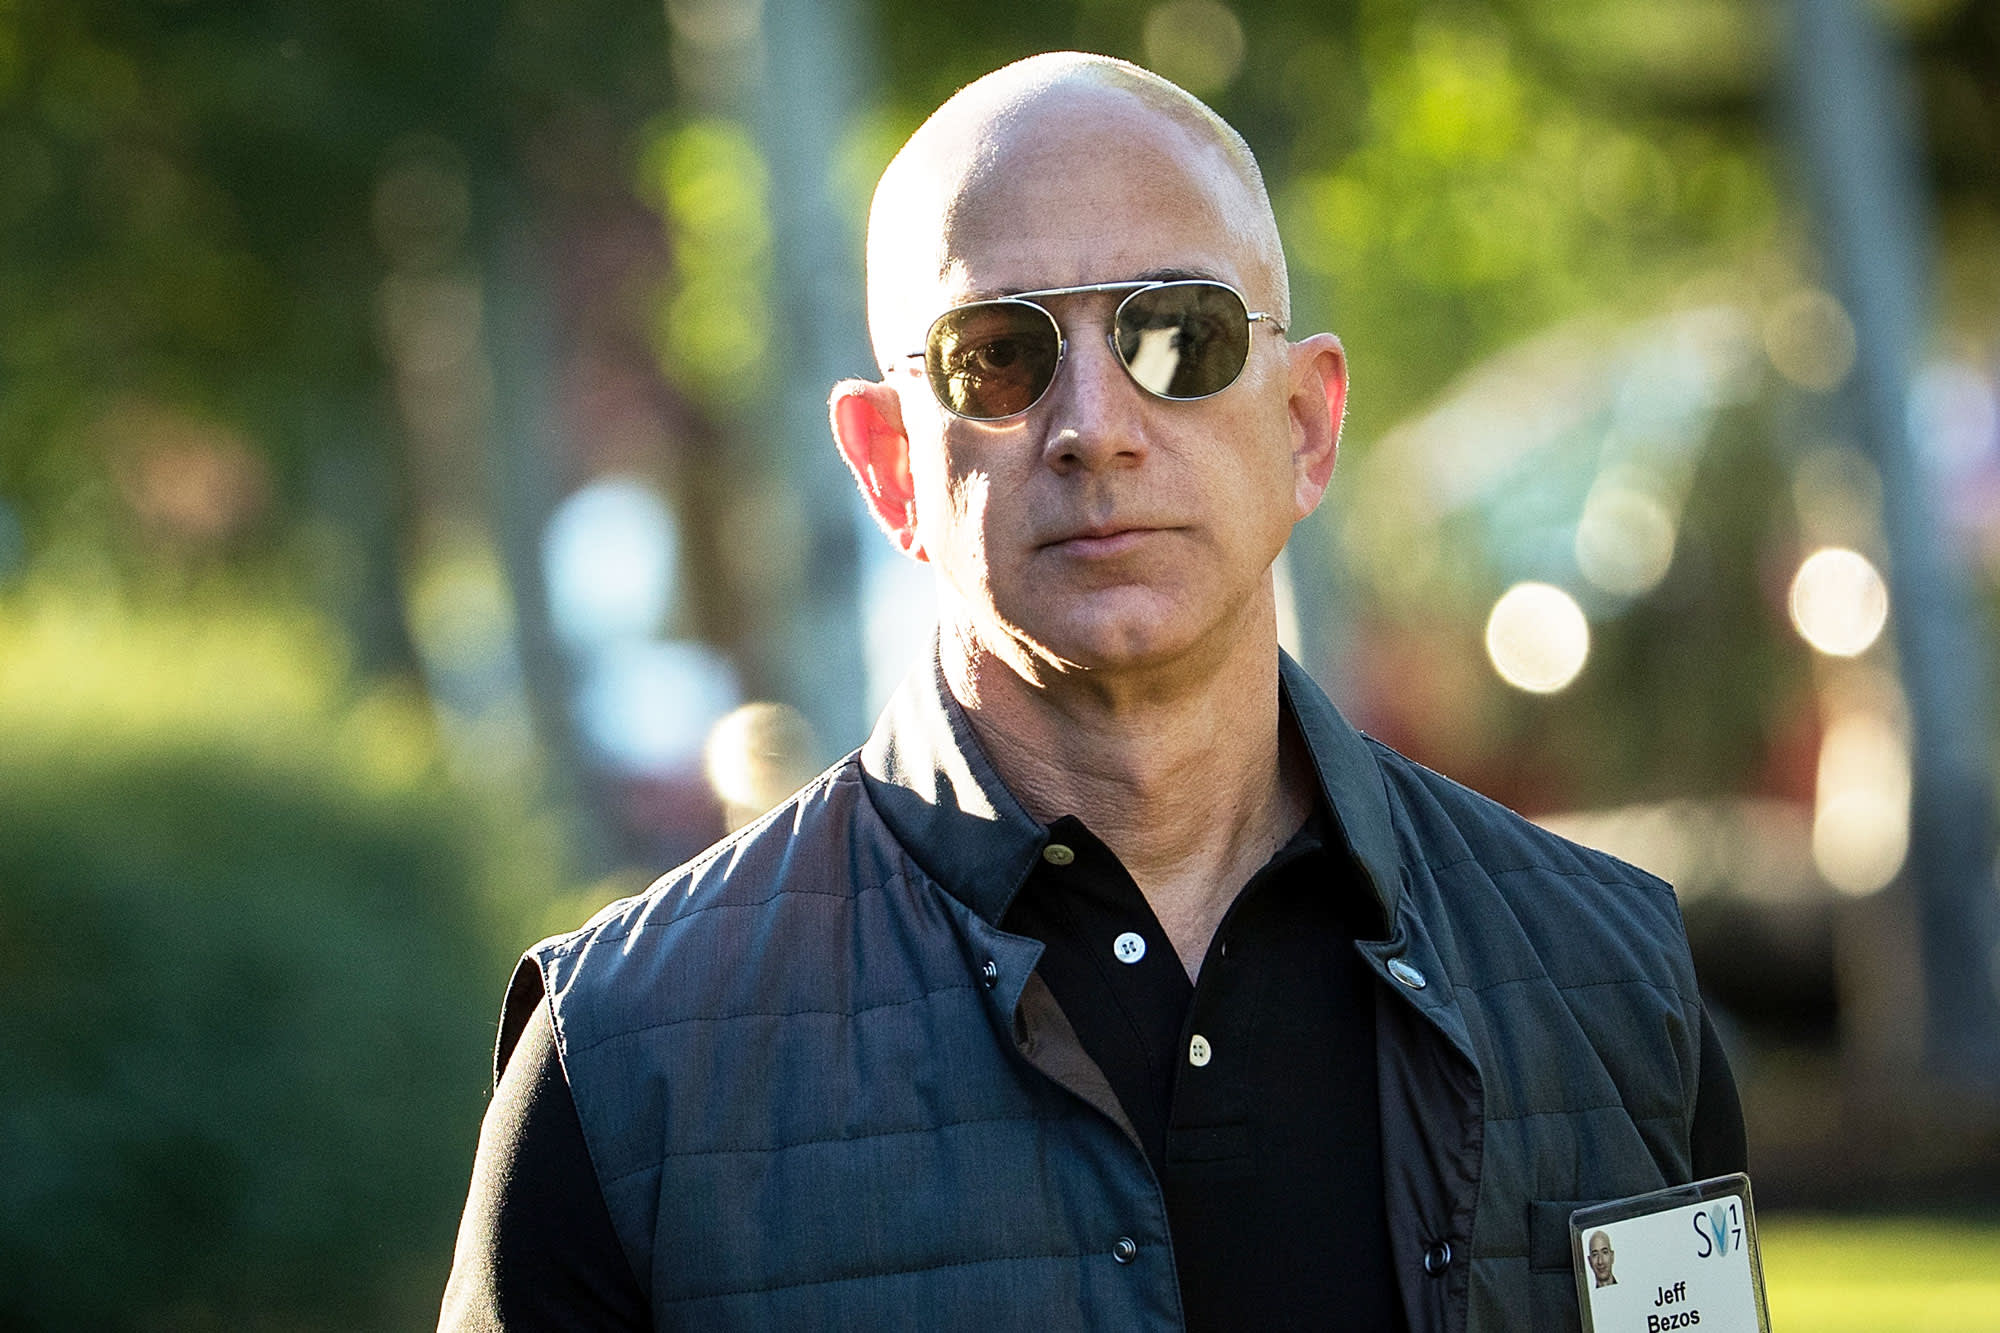 Amazon bans use of its Facial Recognition Technology by Police for one year